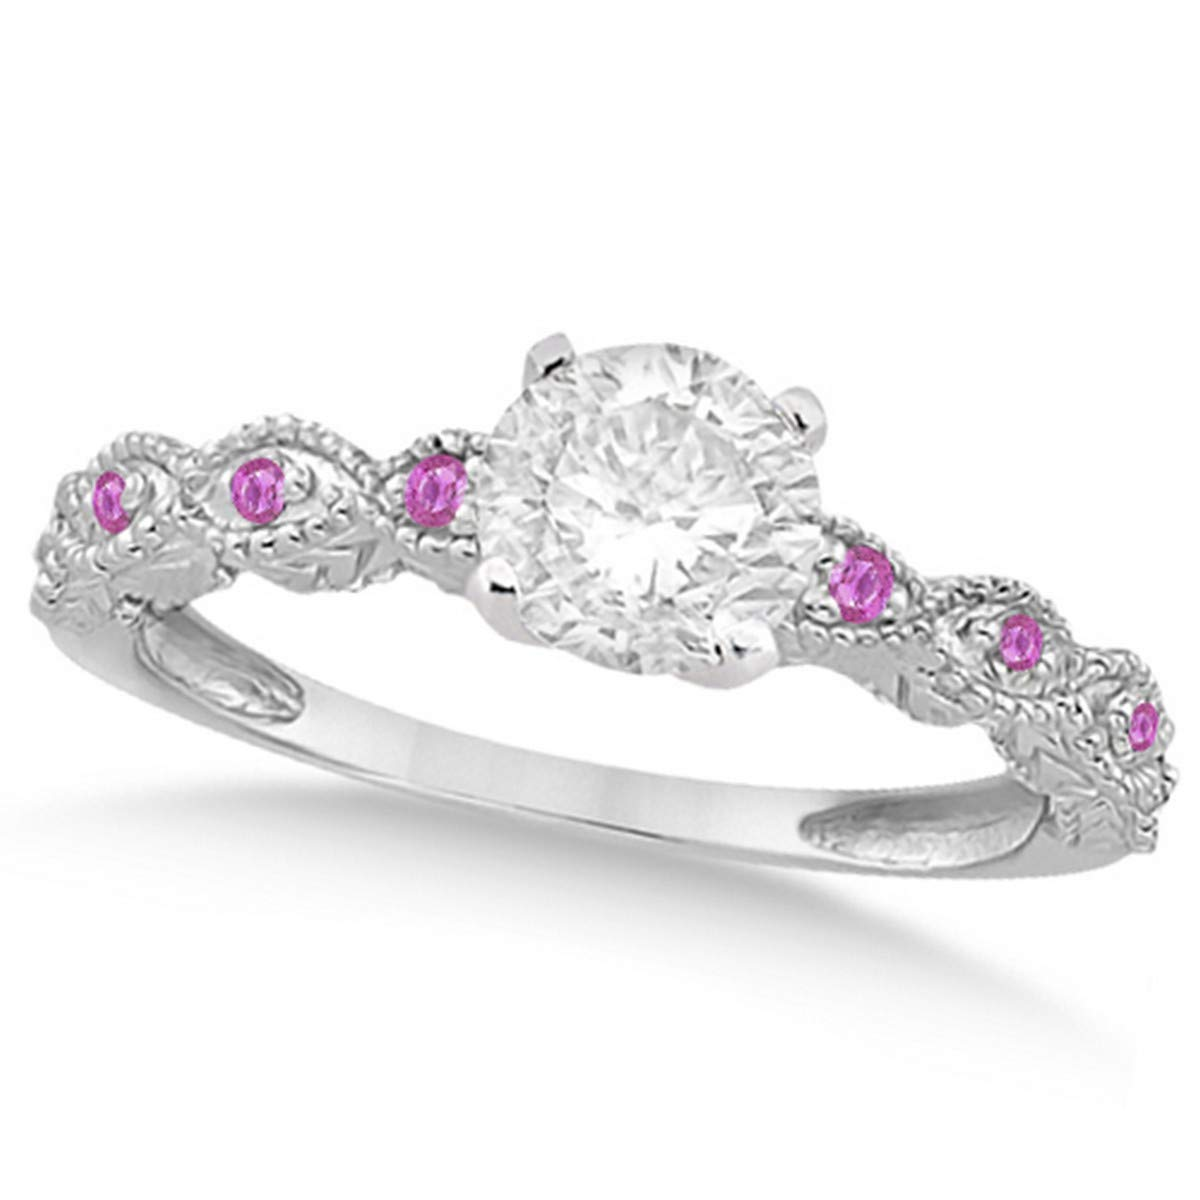 Ladies Vintage Diamond and Pink Sapphire Engagement Ring w